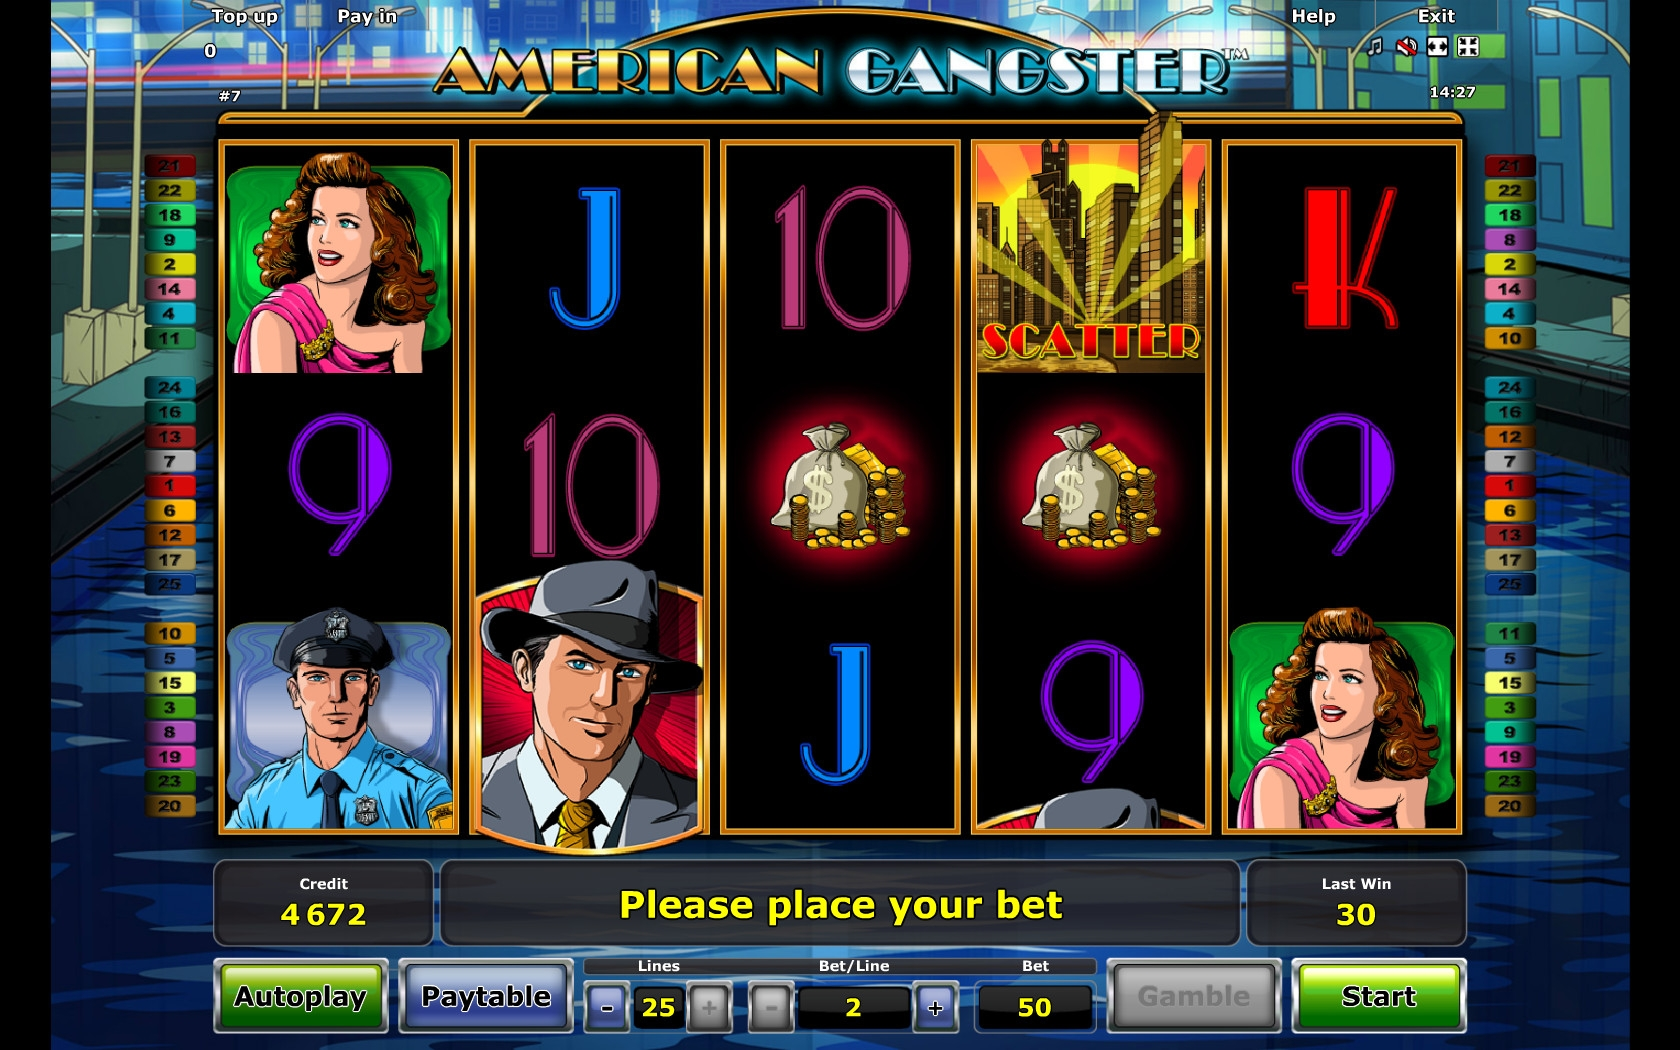 casino online bonus quotes from american gangster